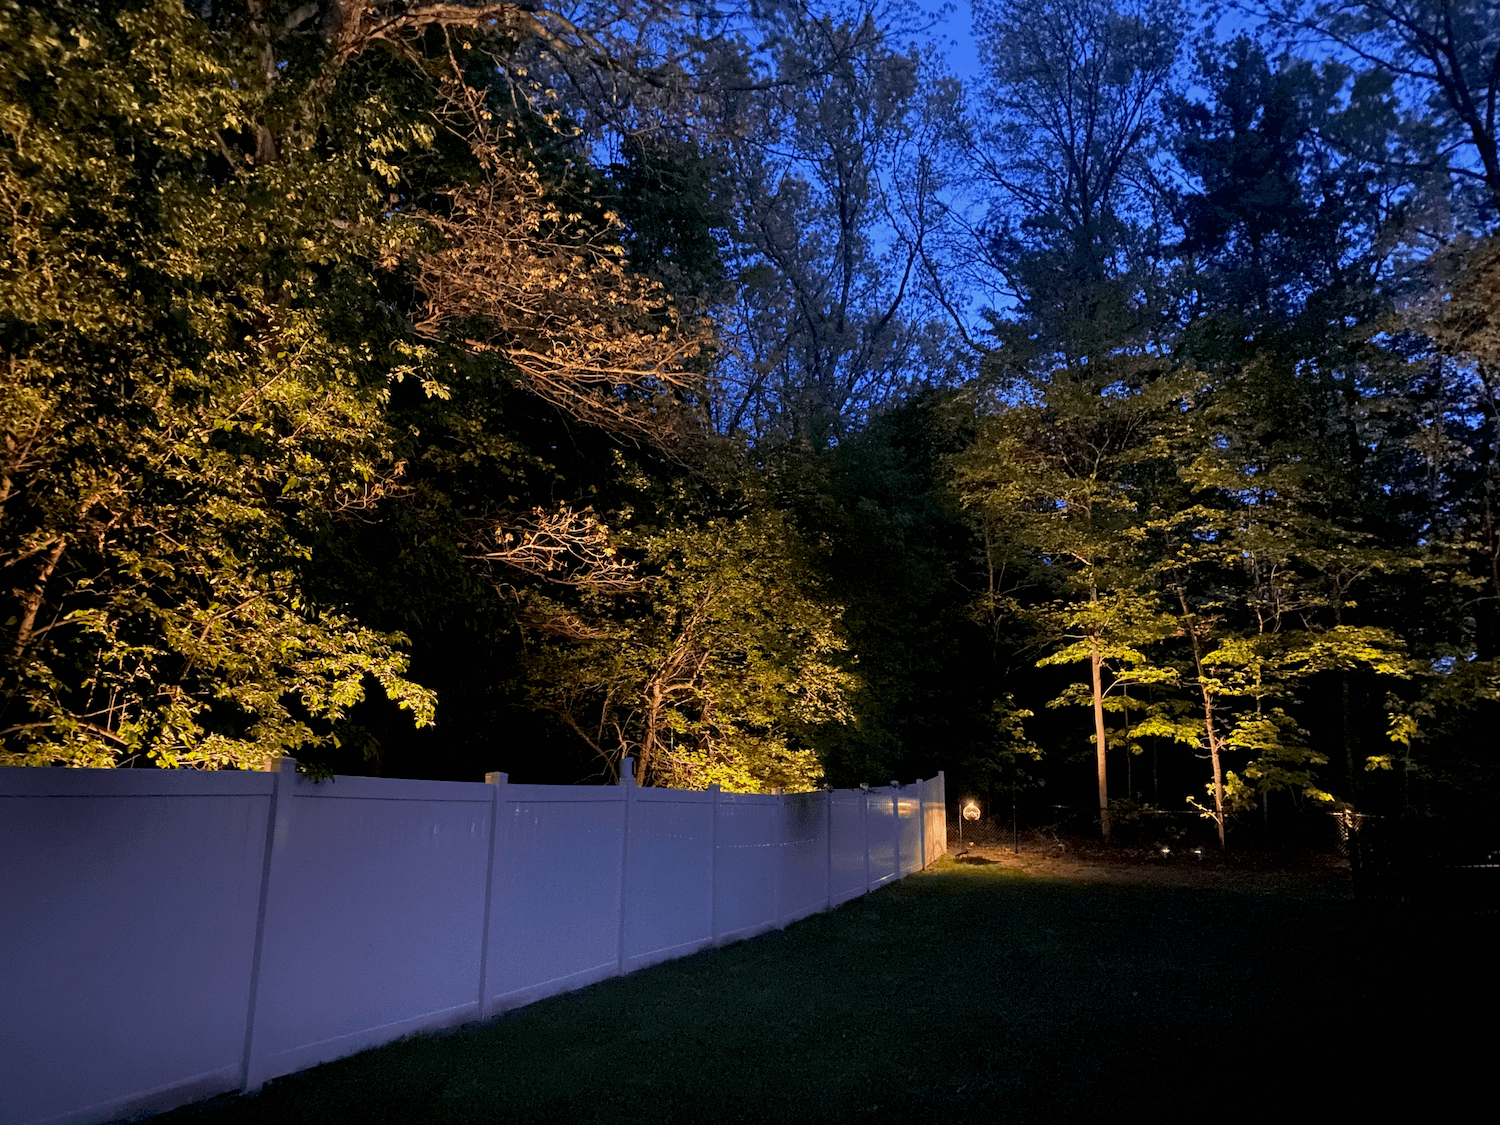 A tree line in the backyard lit up at night with low voltage up lighting